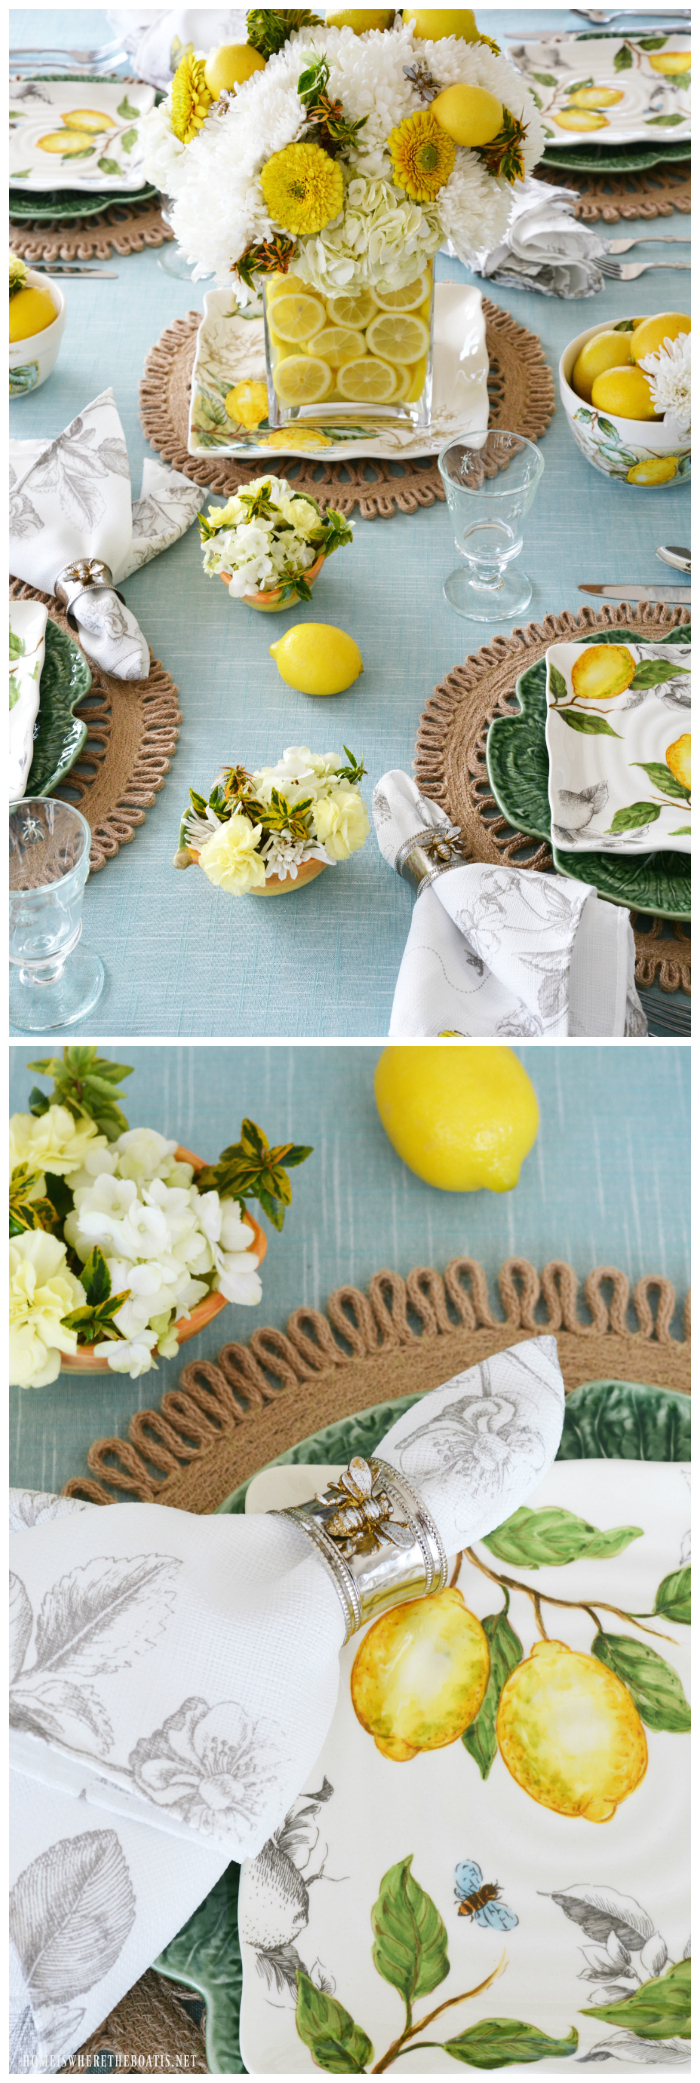 Create a flower arrangement and centerpiece for your table using lemons. This easy tutorial provides a little sunshine and interest to your glass vase, and is a fun and decorative way to conceal your flower stems!